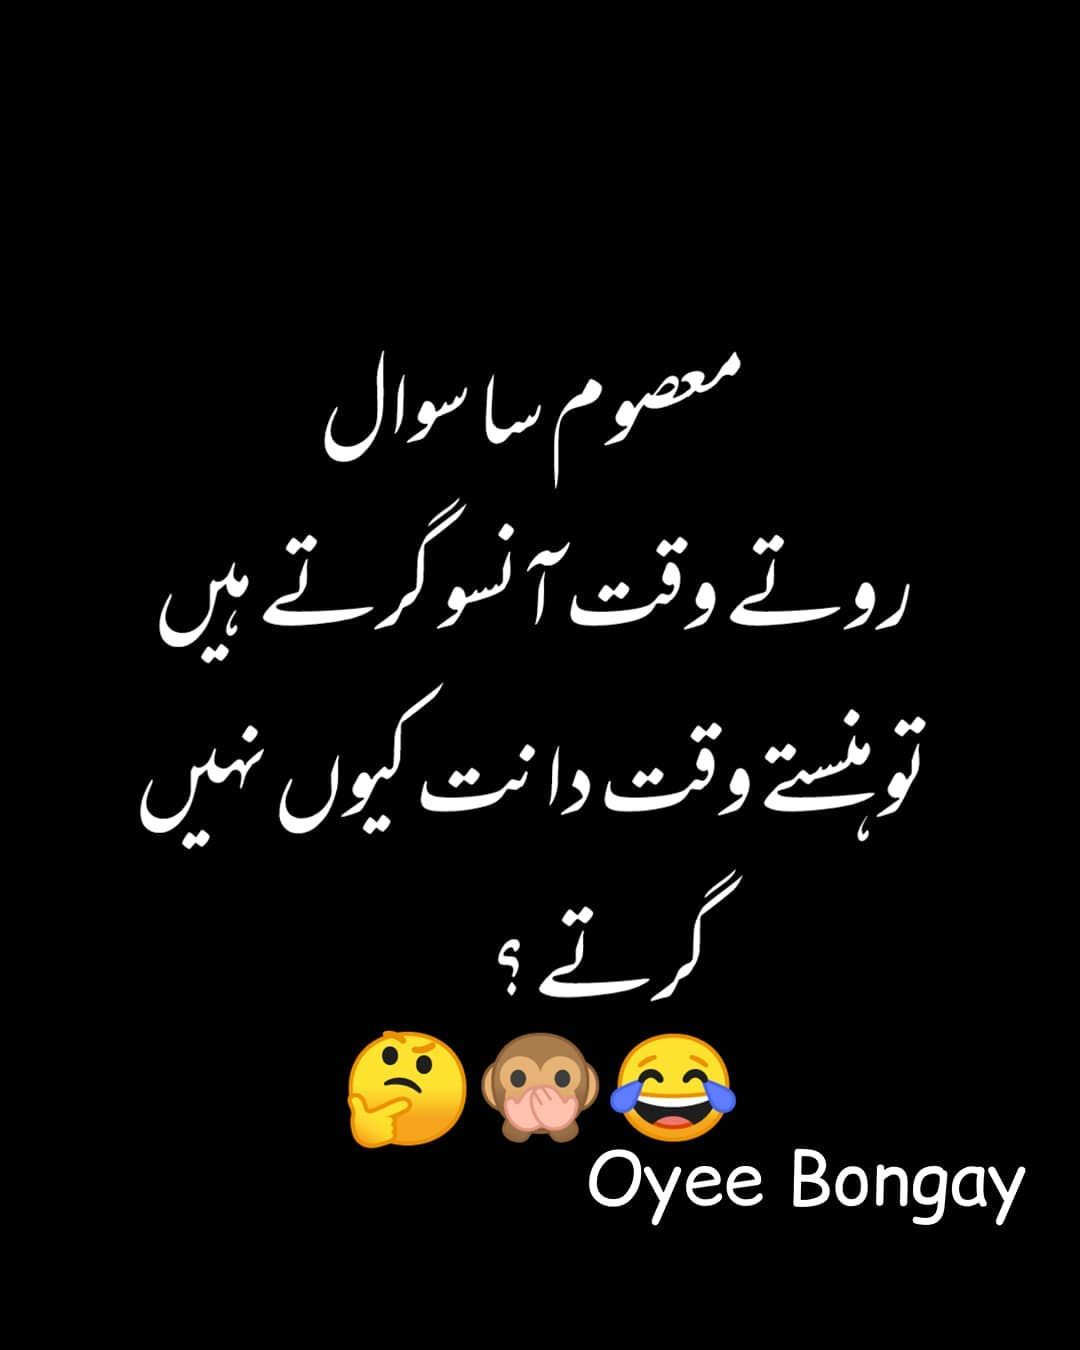 Funny Images With Text In Urdu : funny, images, Image, Contain:, Quotes, Funny,, Funny, Quotes,